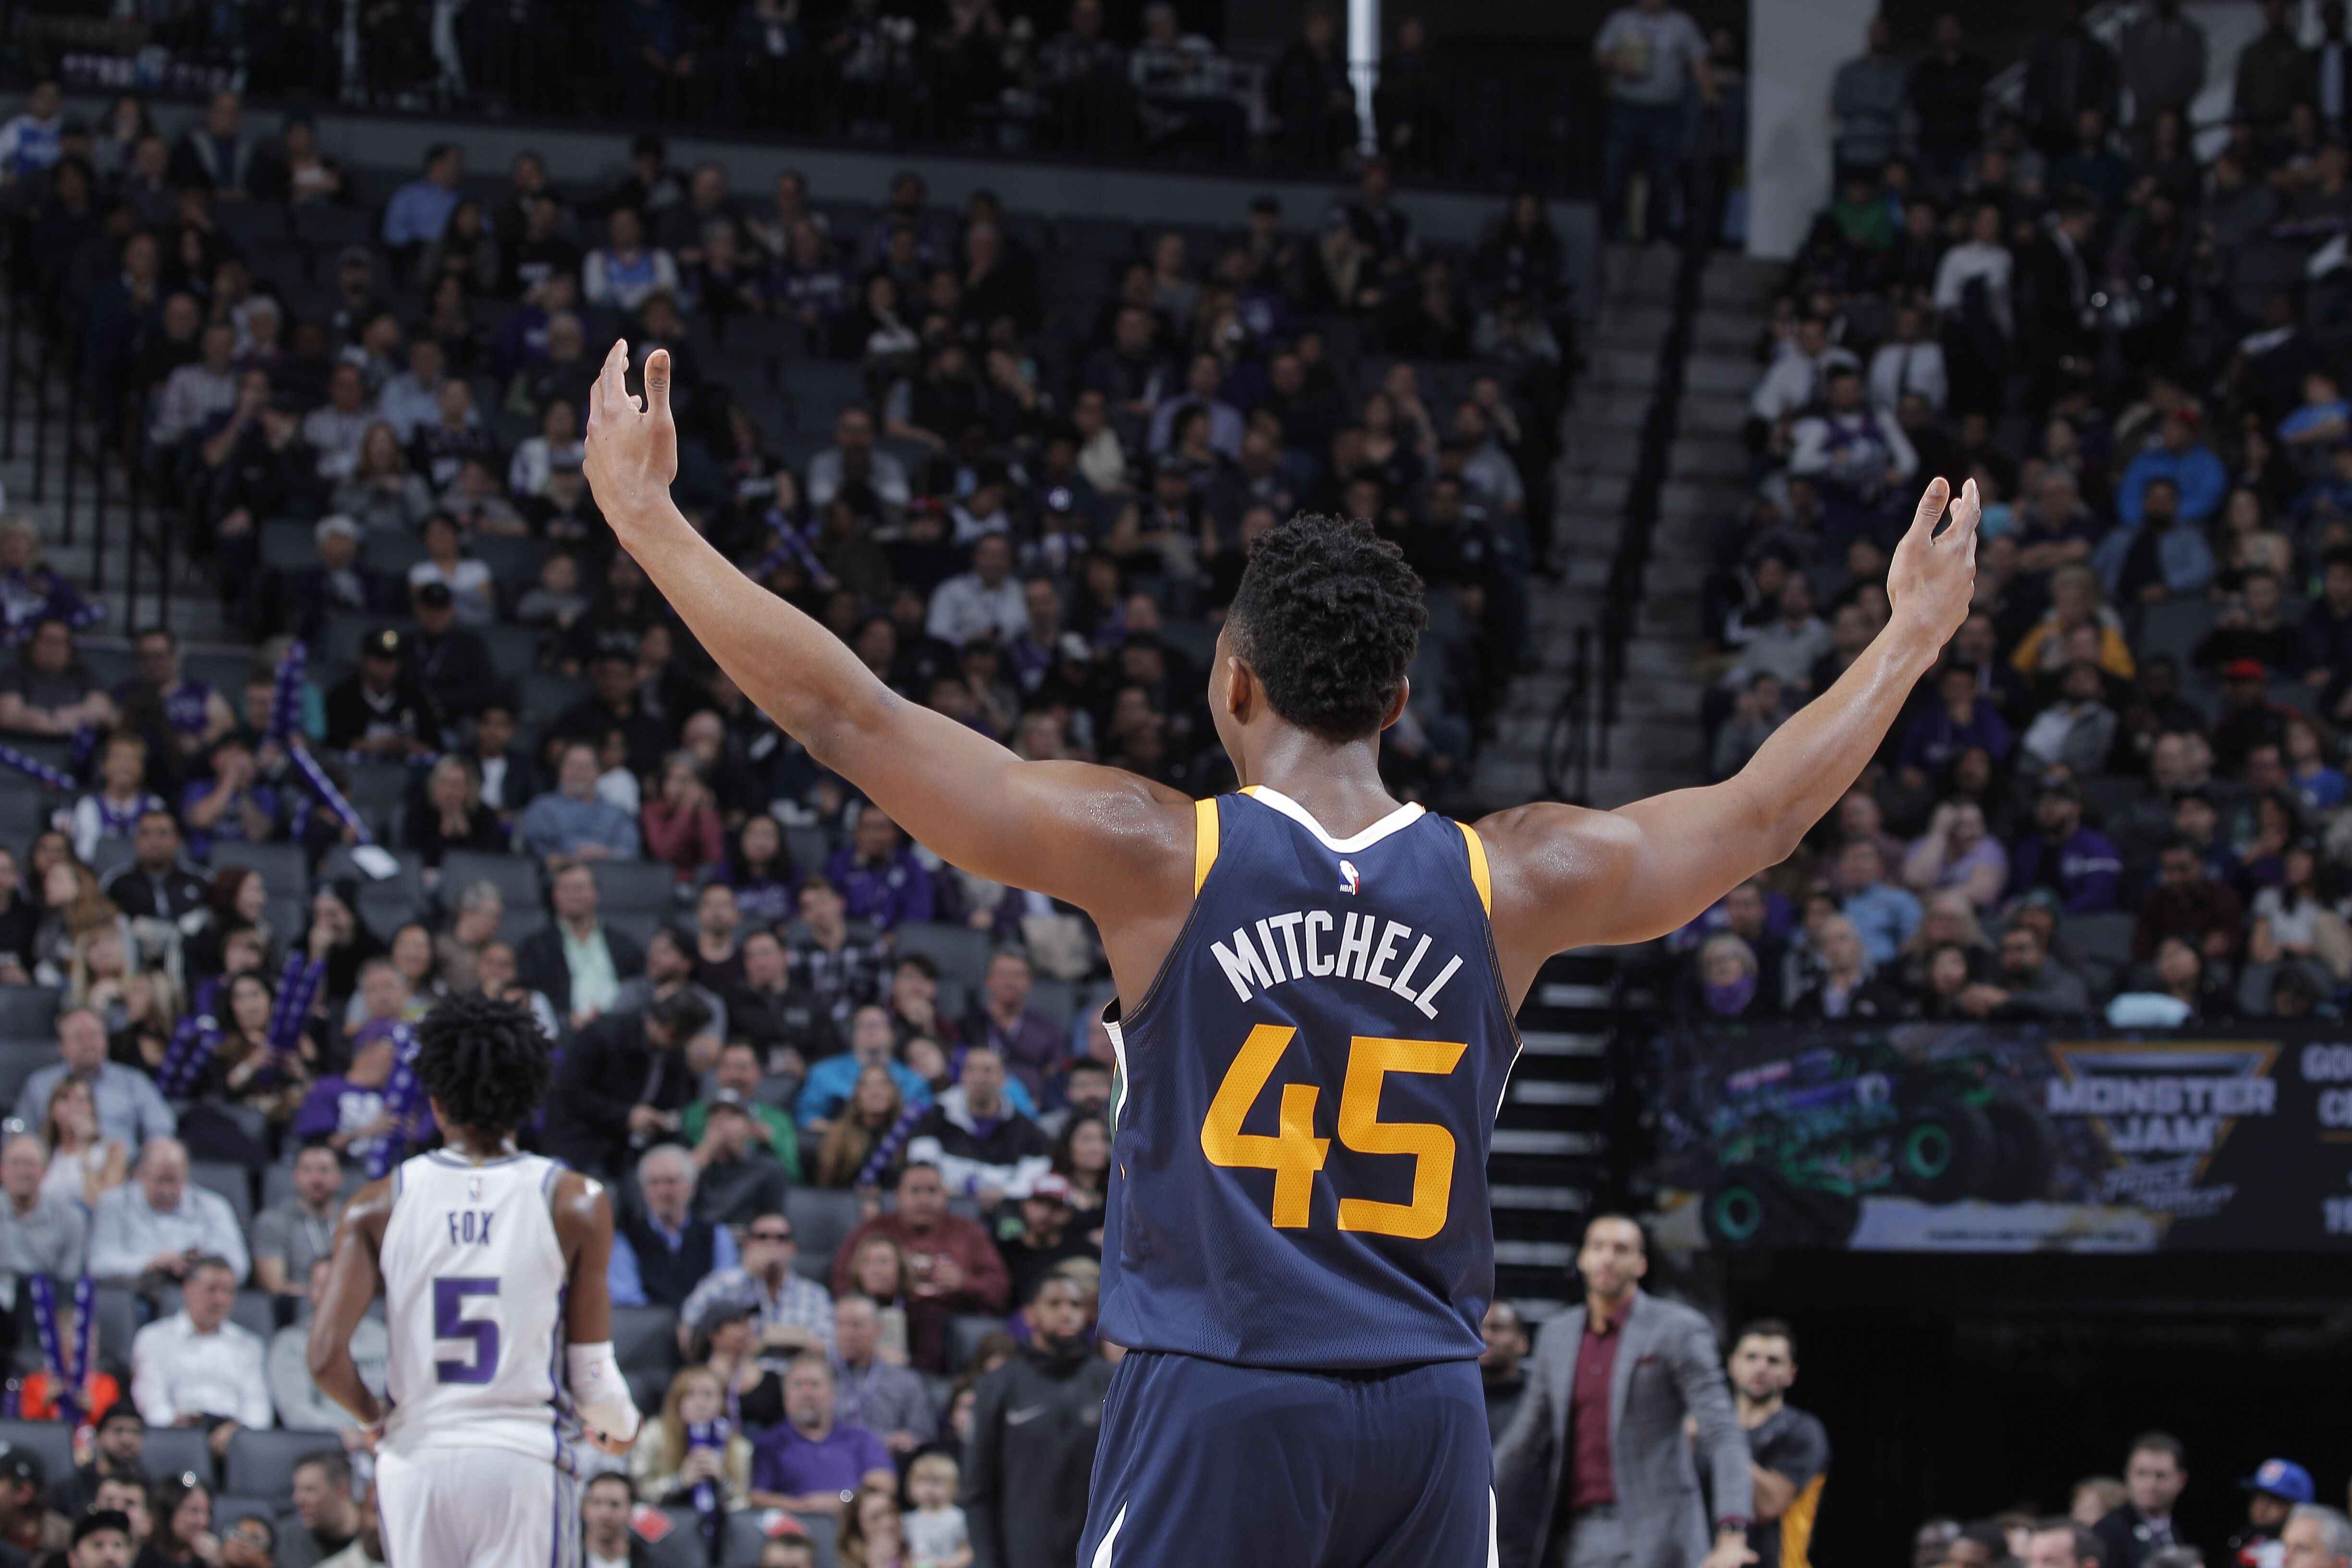 timeless design 48c85 a0593 Utah Jazz: How Donovan Mitchell could take over All-Star Weekend